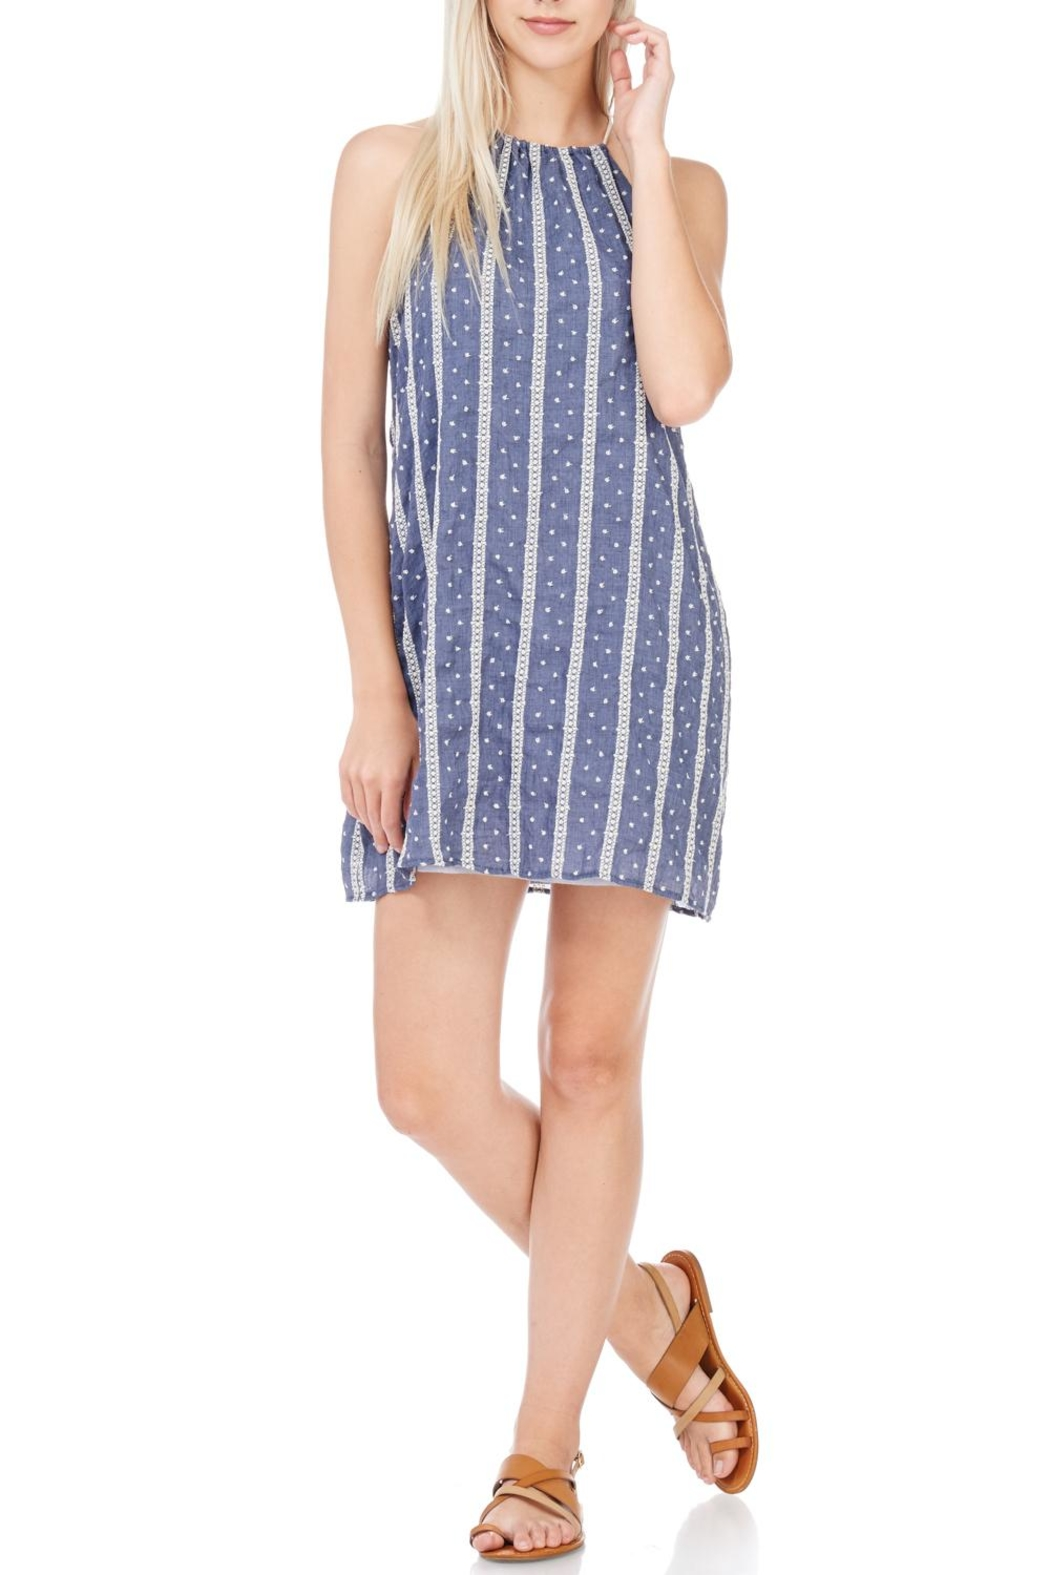 Millibon Lightweight Denim Dress - Main Image